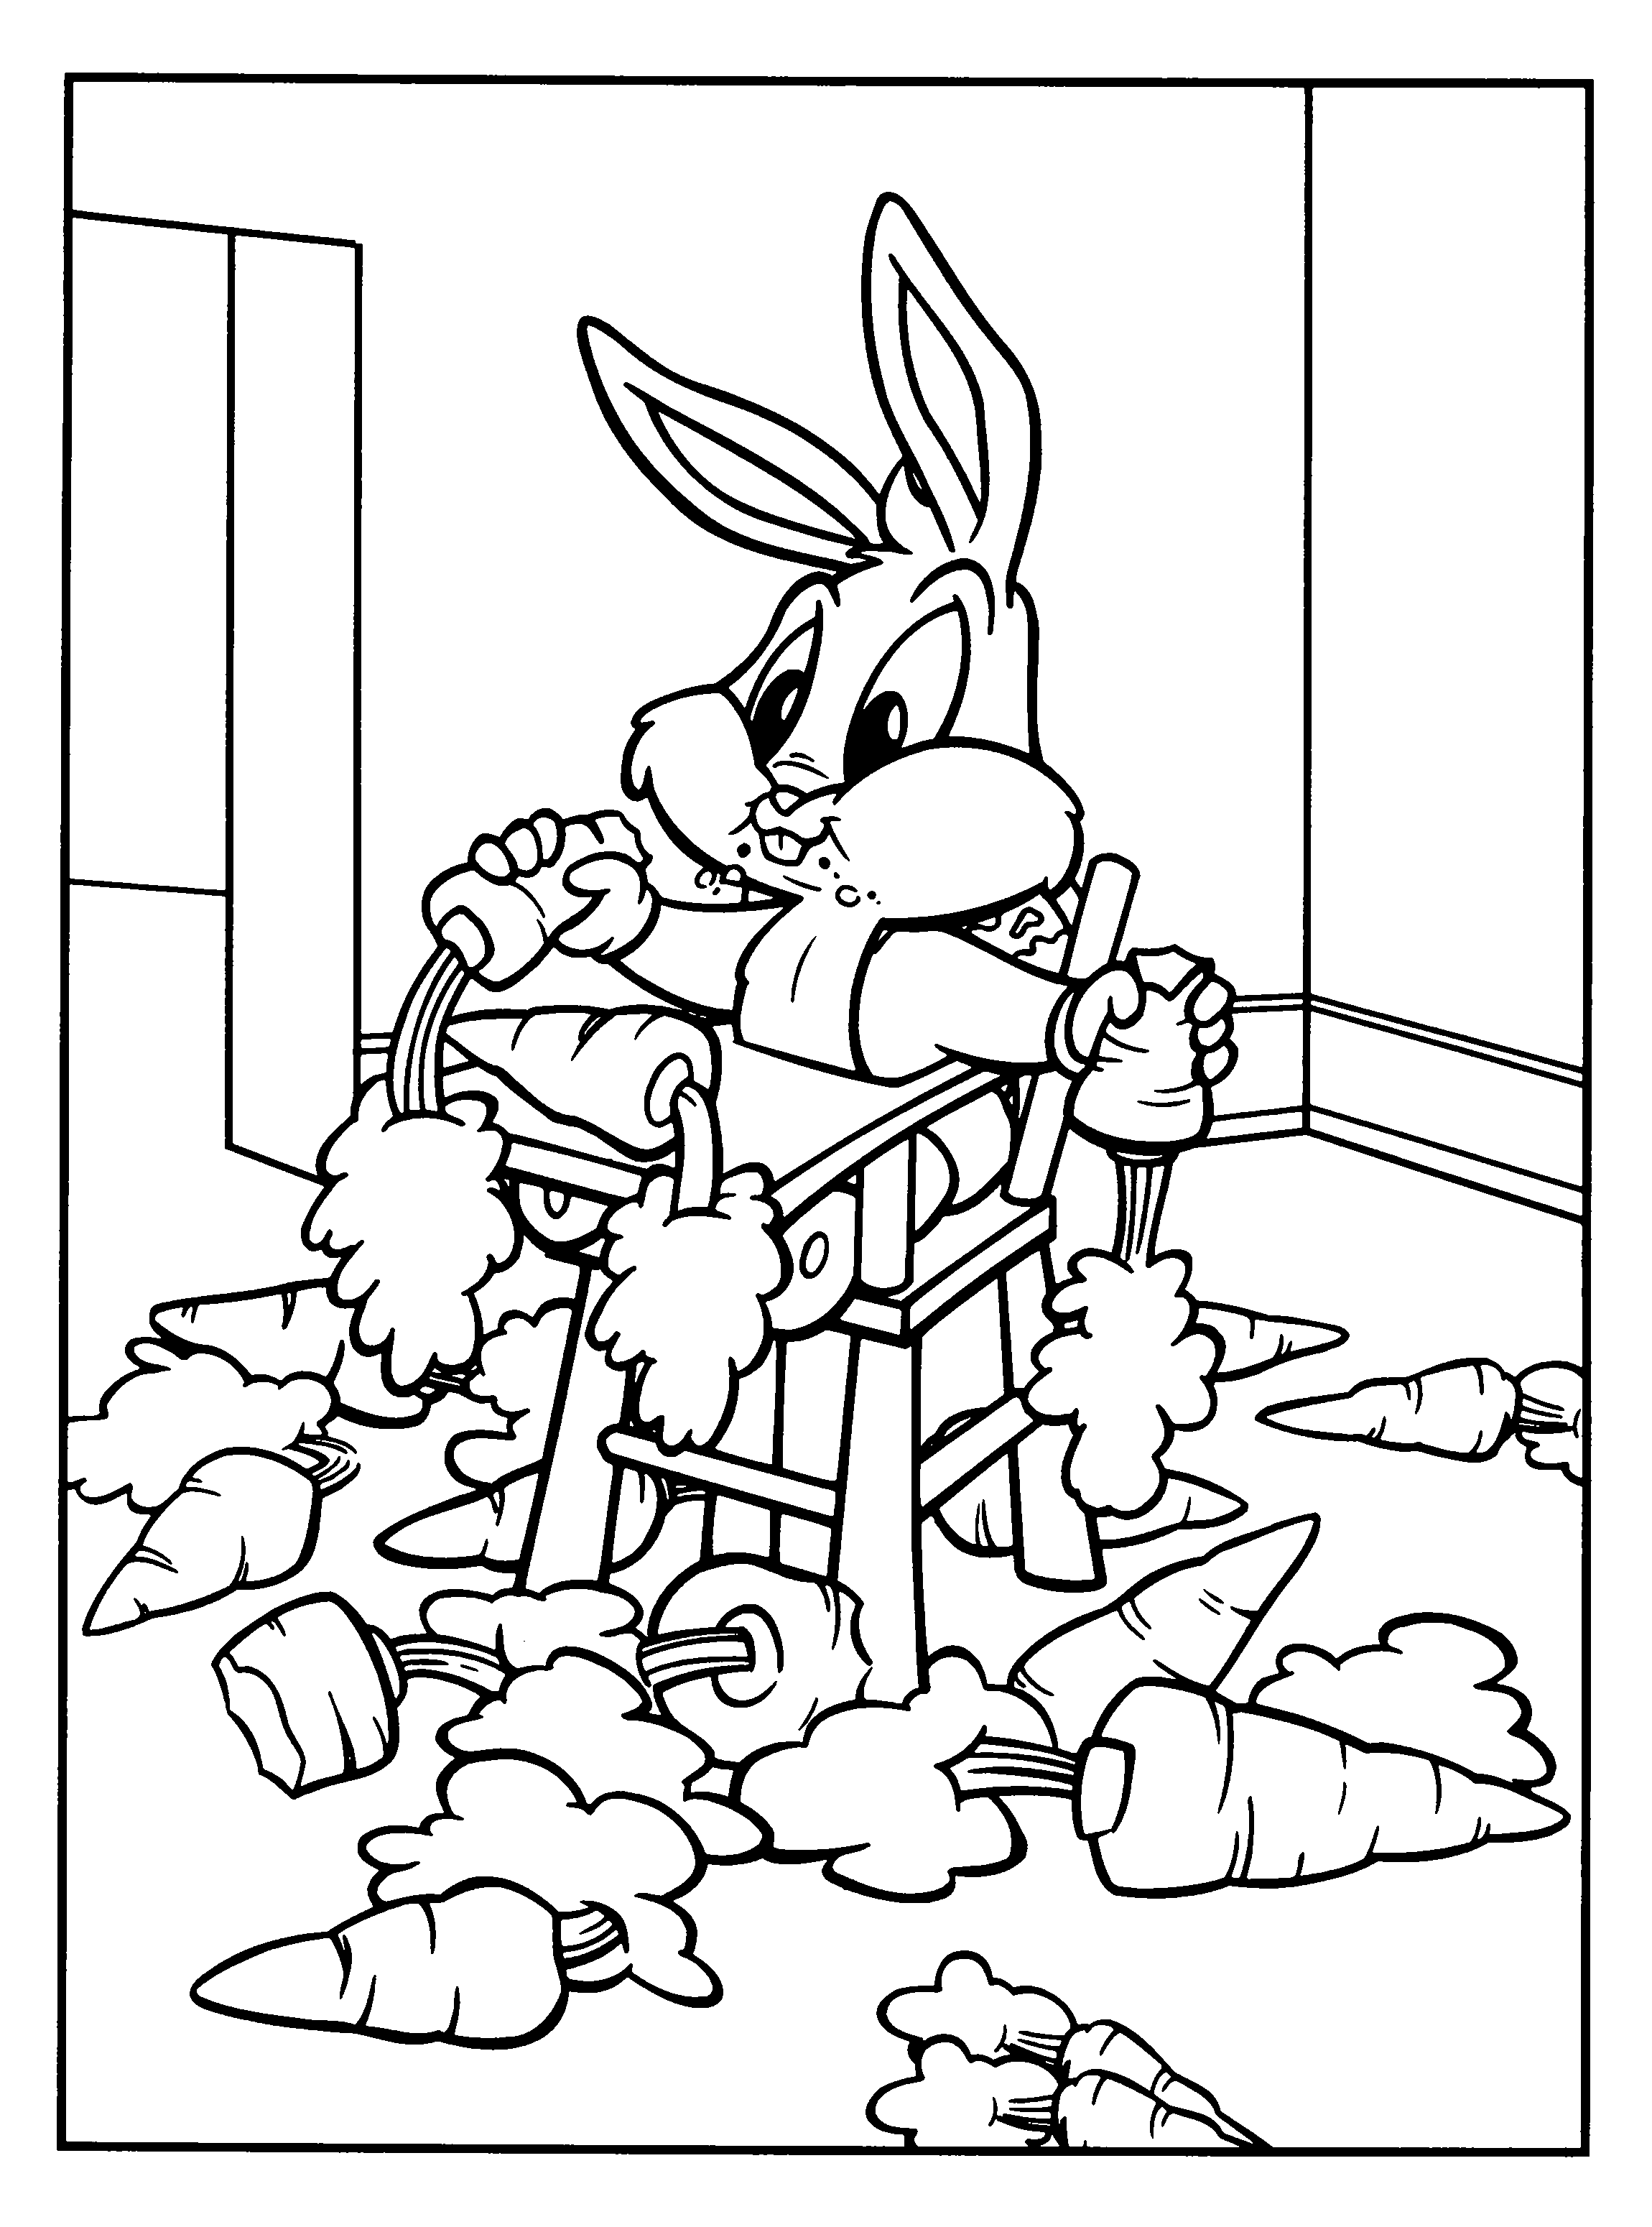 Baby Looney Tunes #63 (Cartoons) - Printable coloring pages